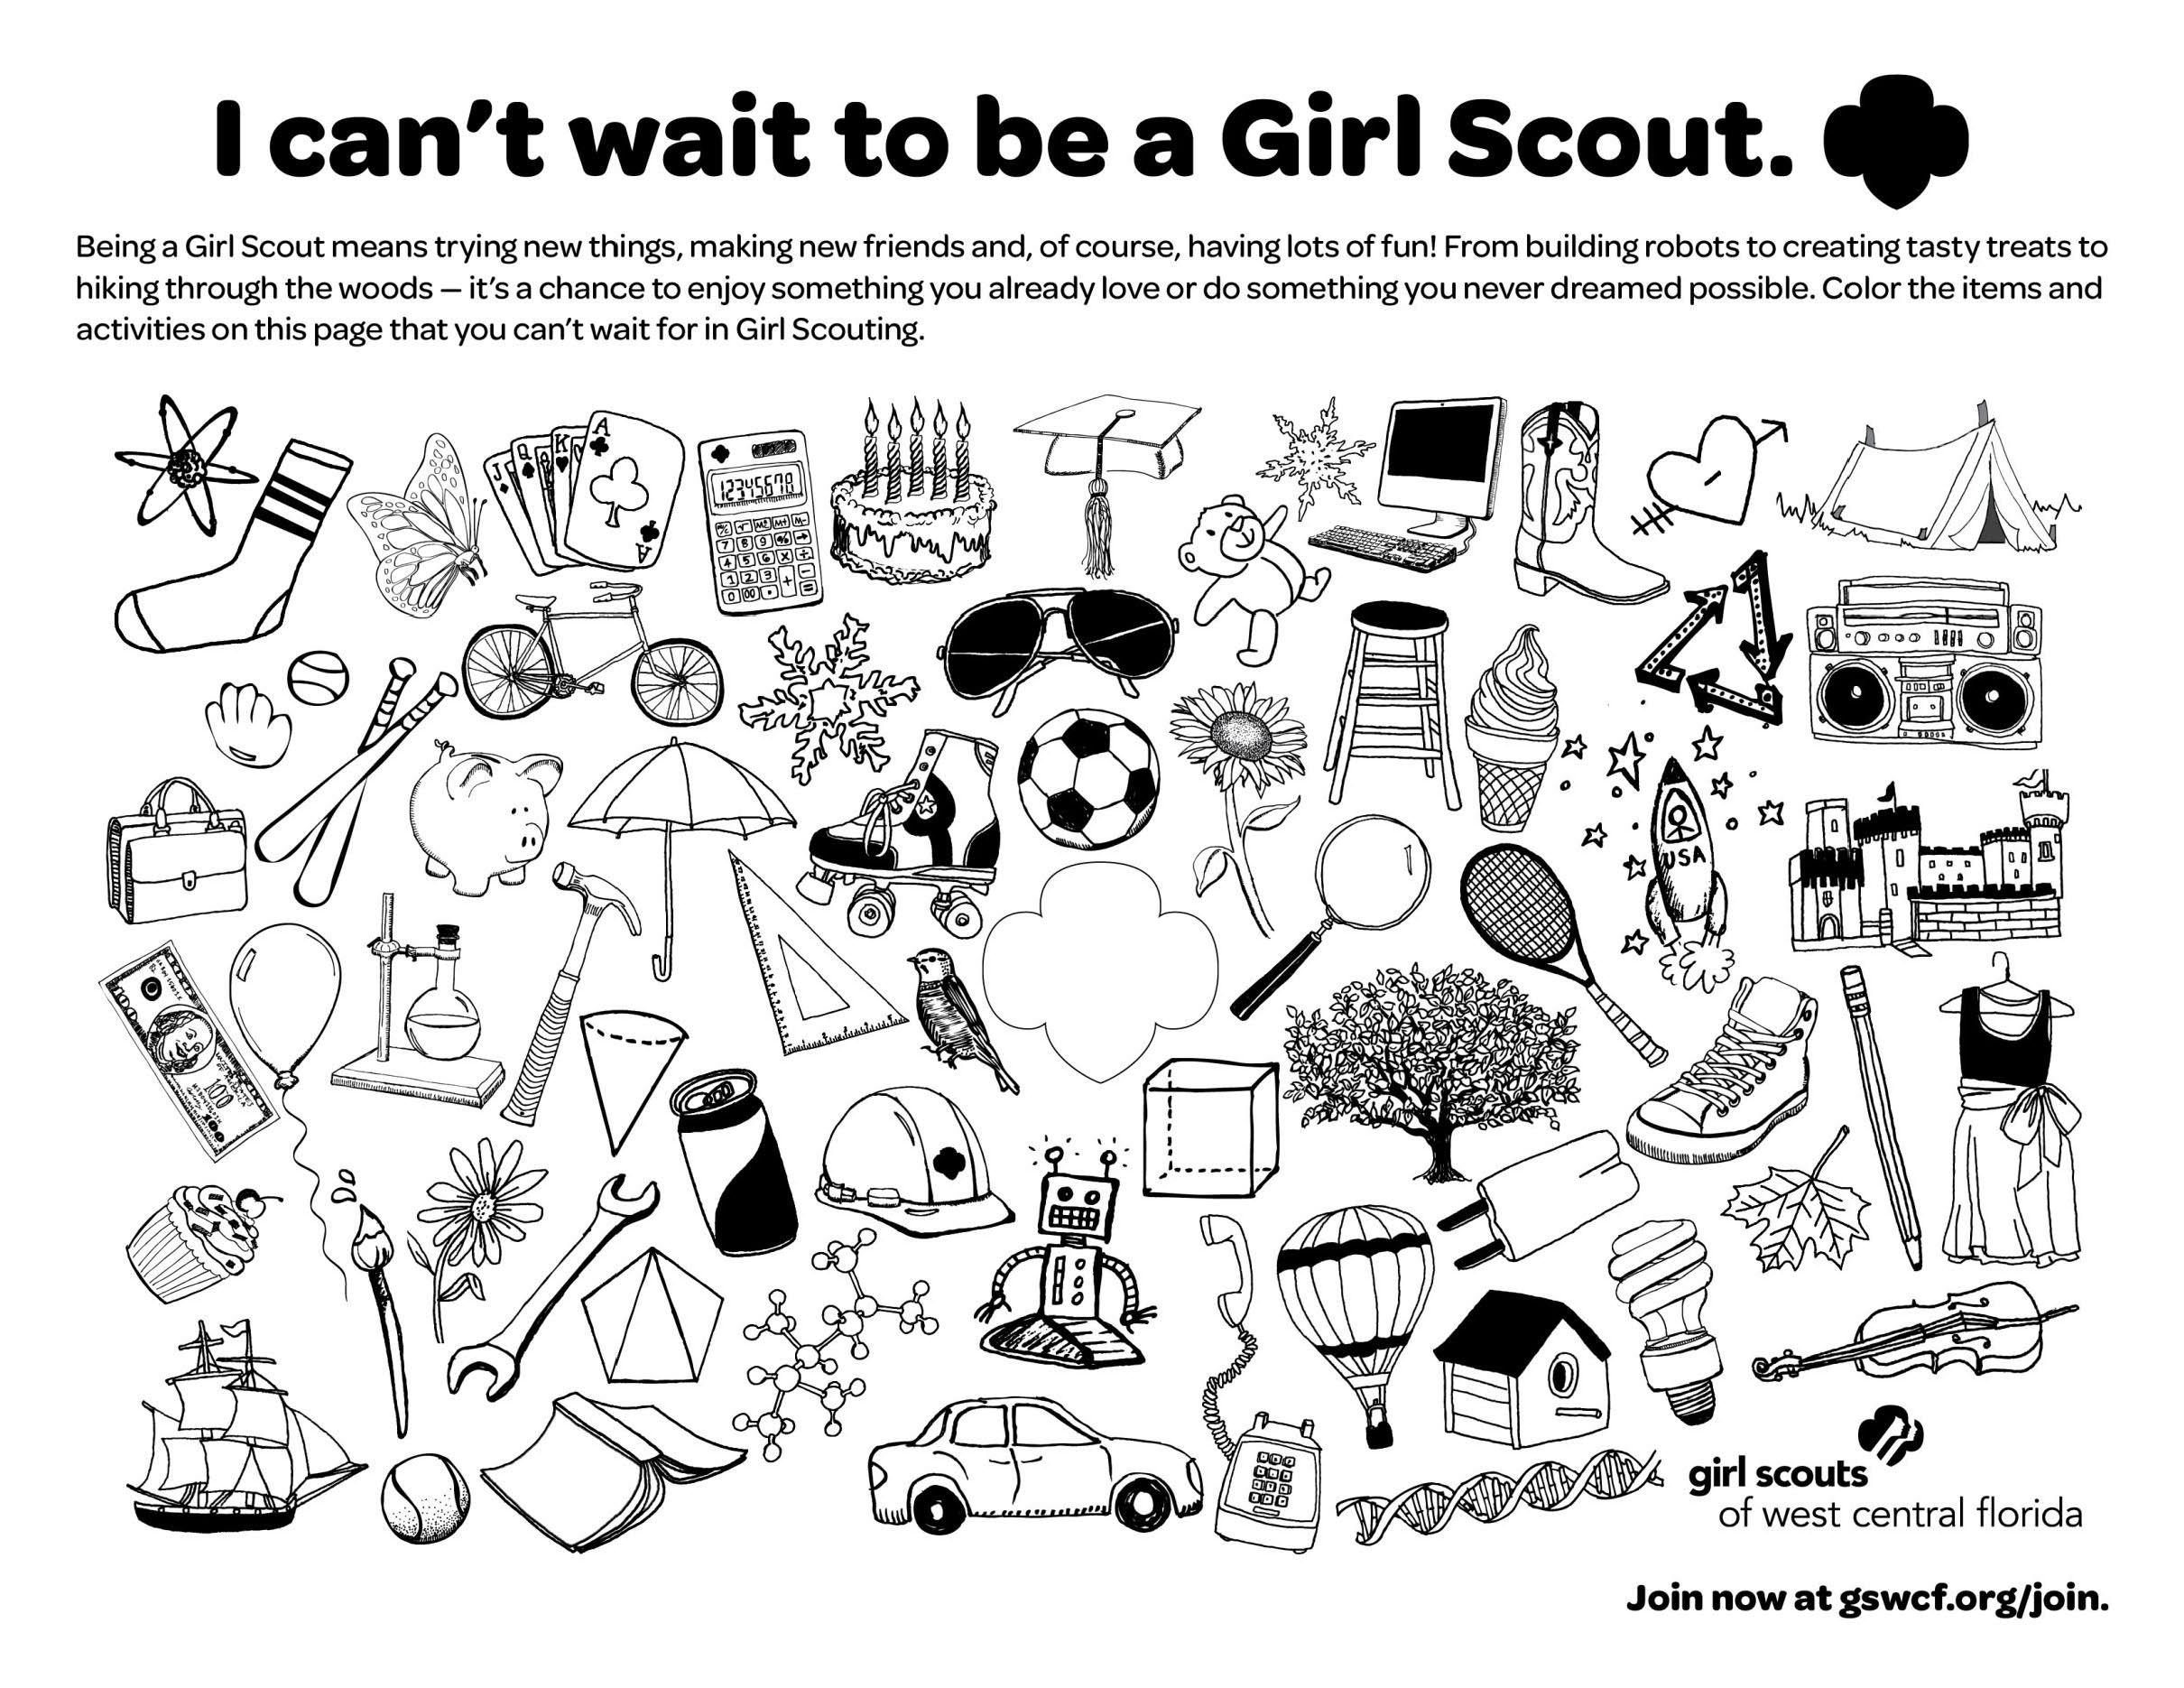 Pin By Girl Scouts Of West Central Florida On I Can T Wait To Join Girl Scouts